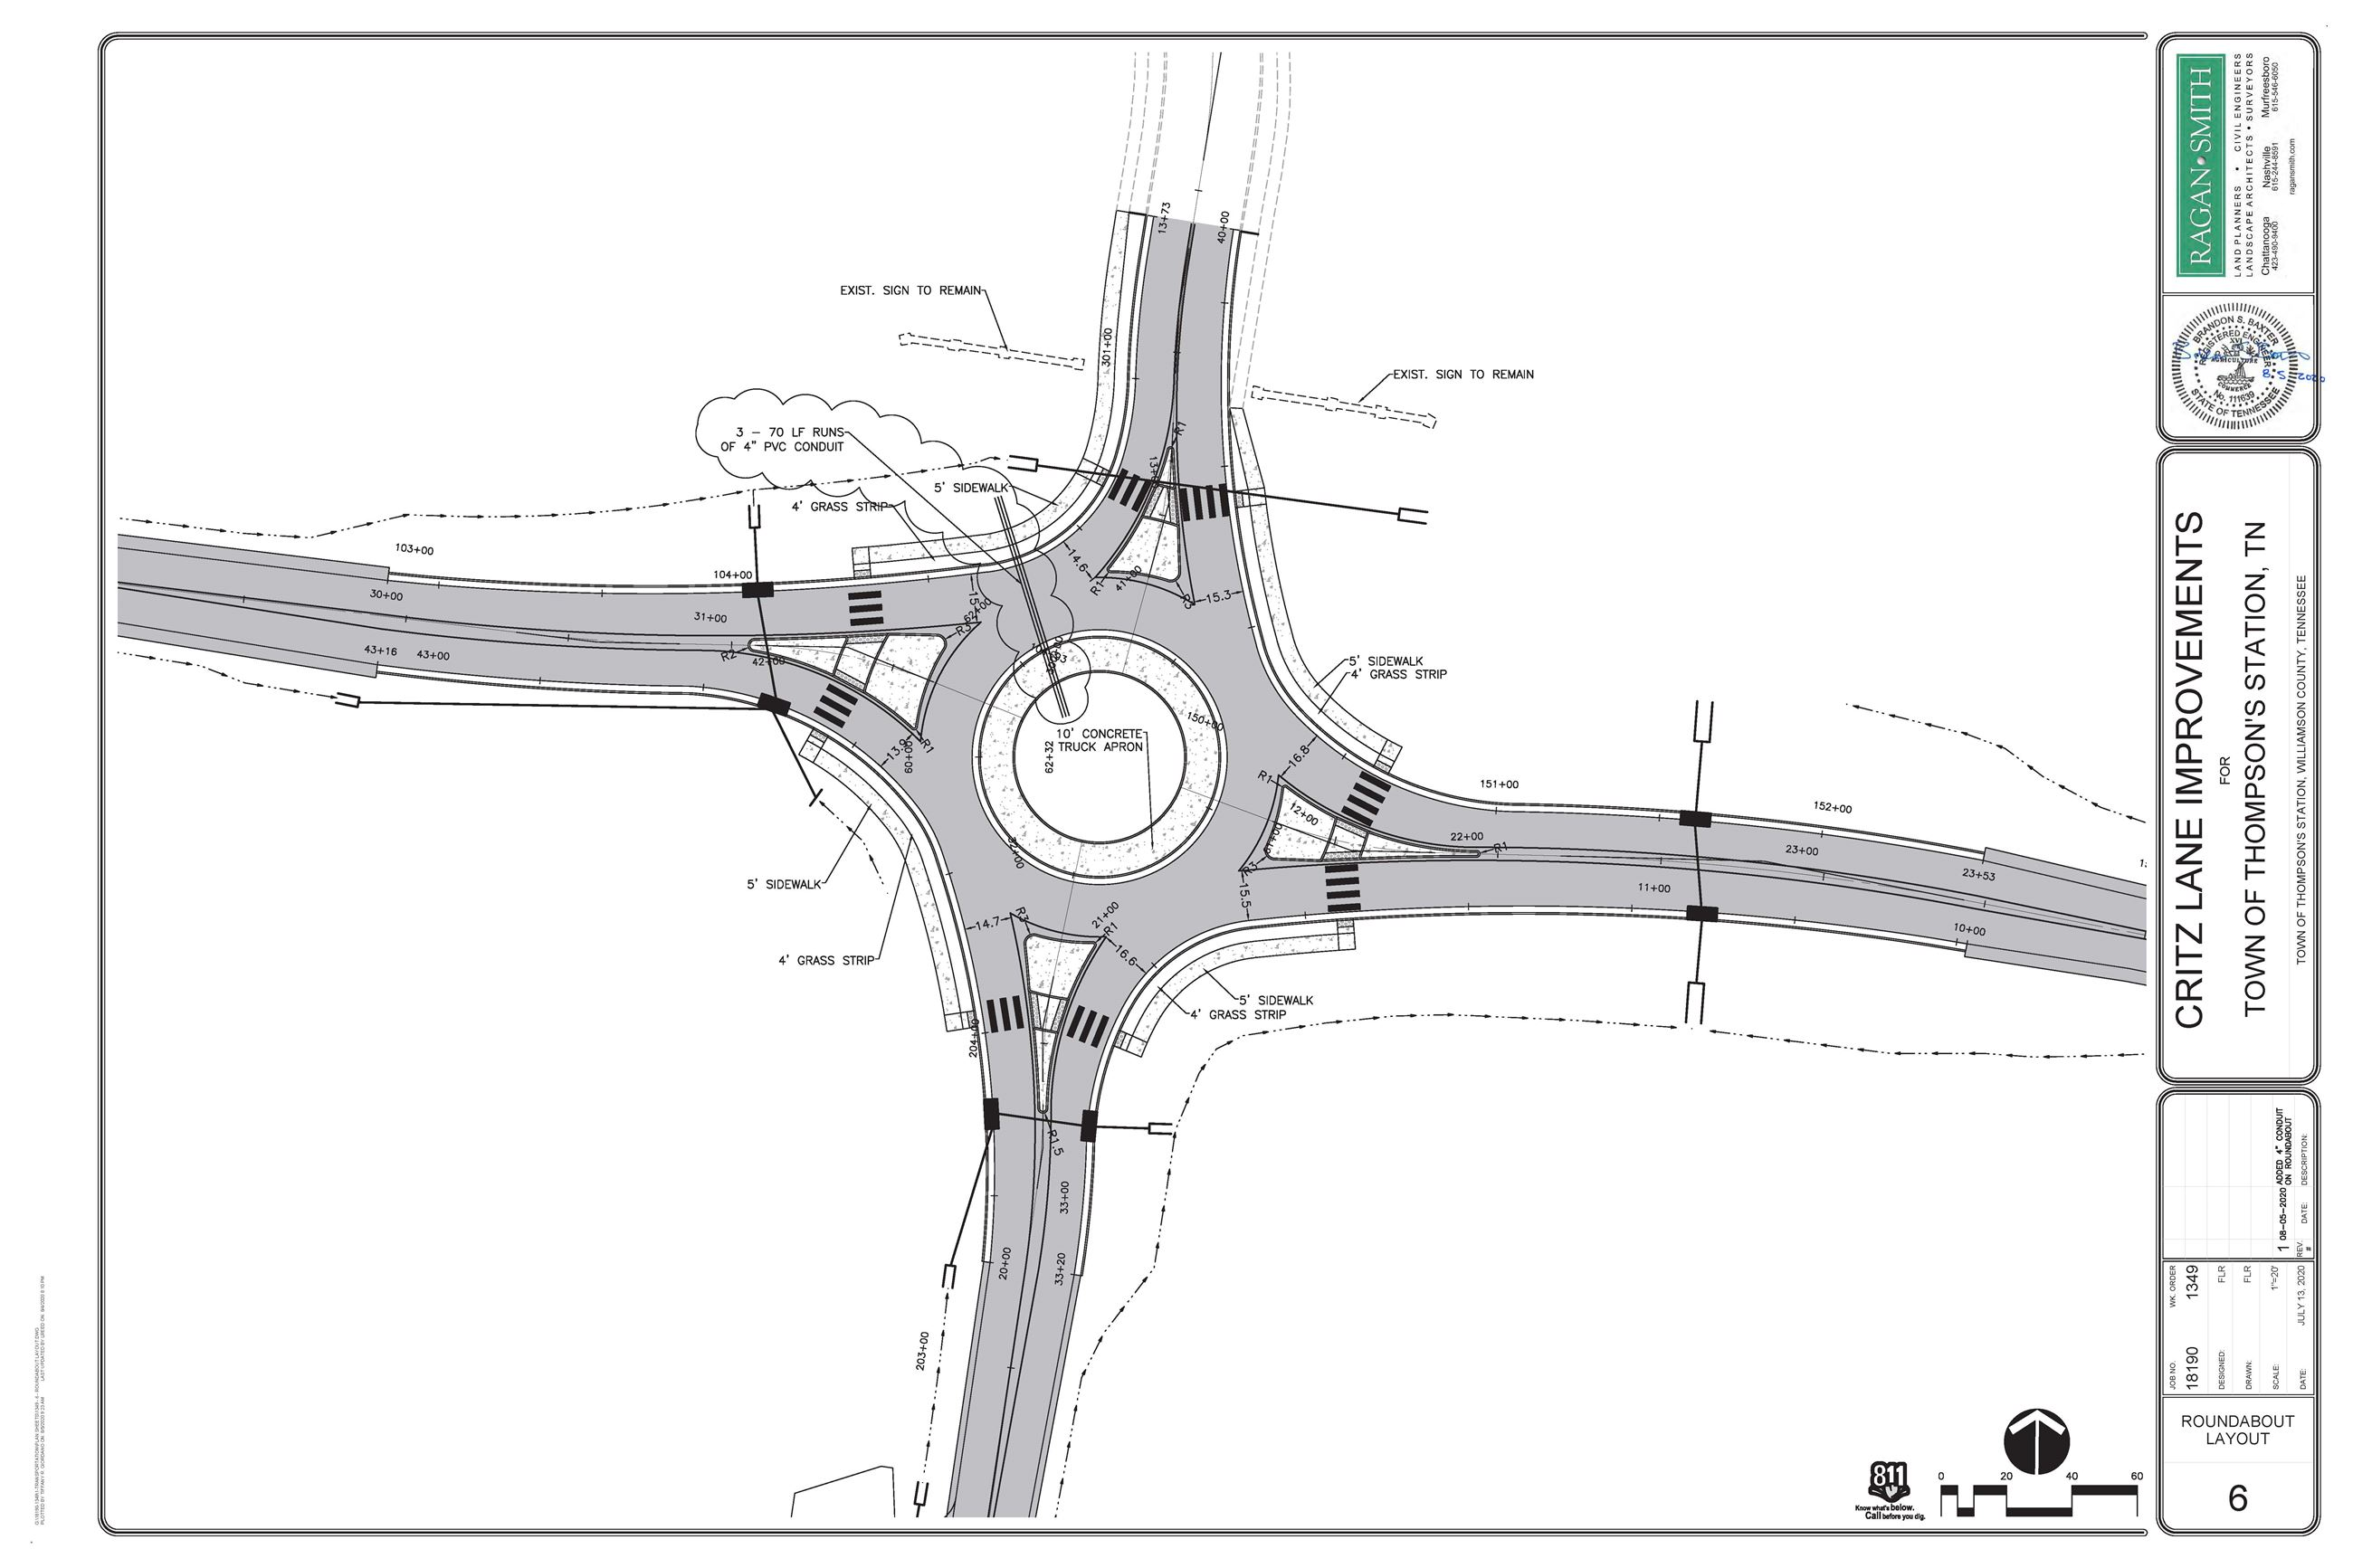 Critz Lane Roundabout Layout